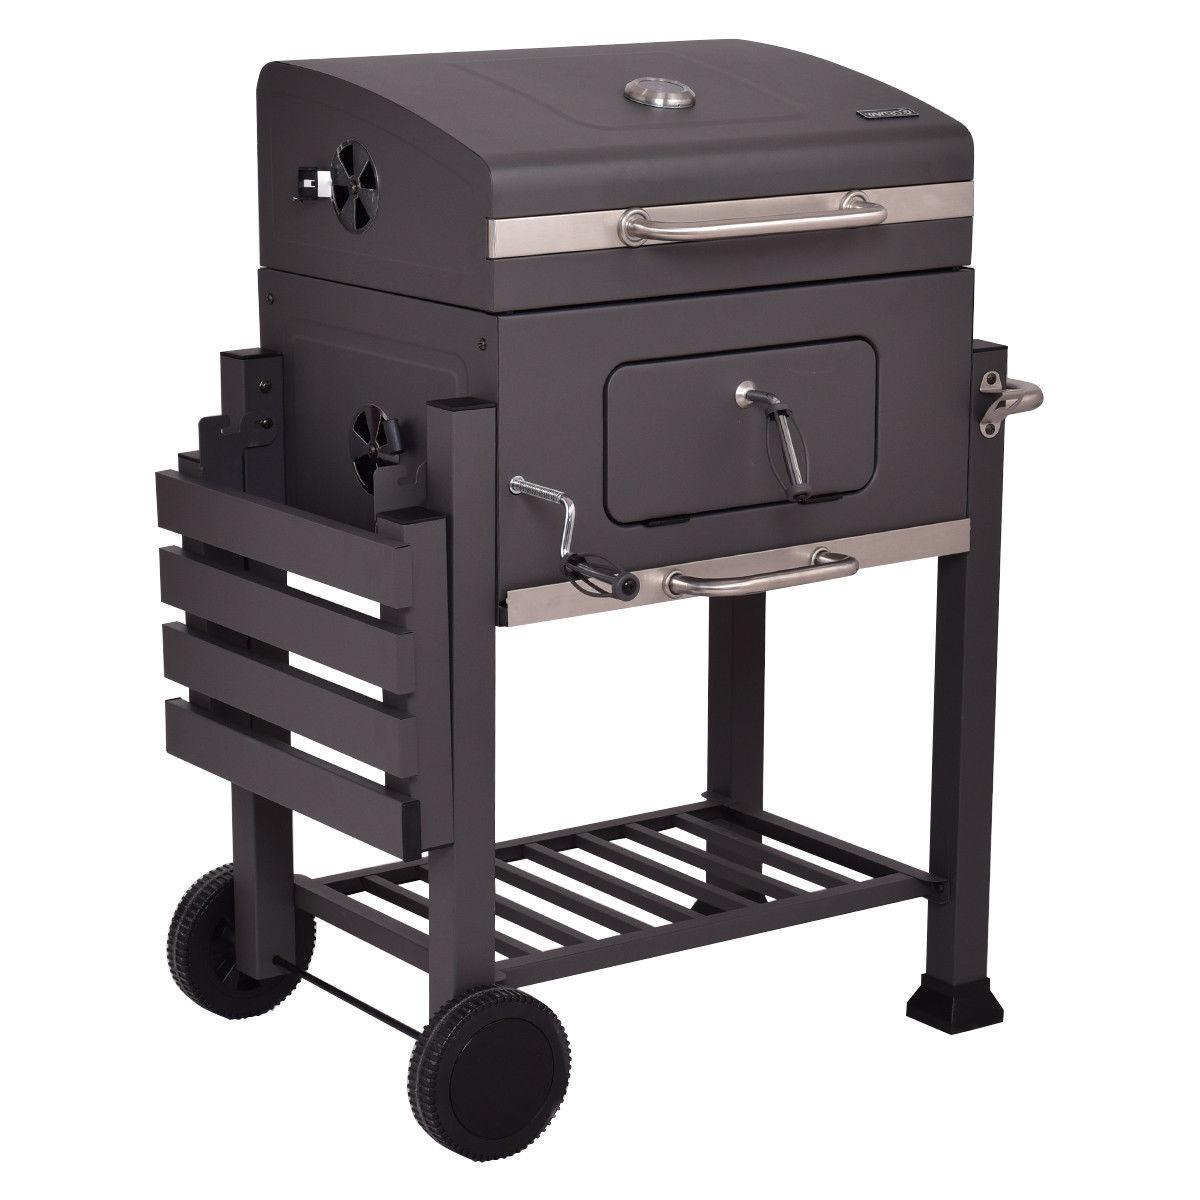 NEW BBQ Patio Cooking Wheels